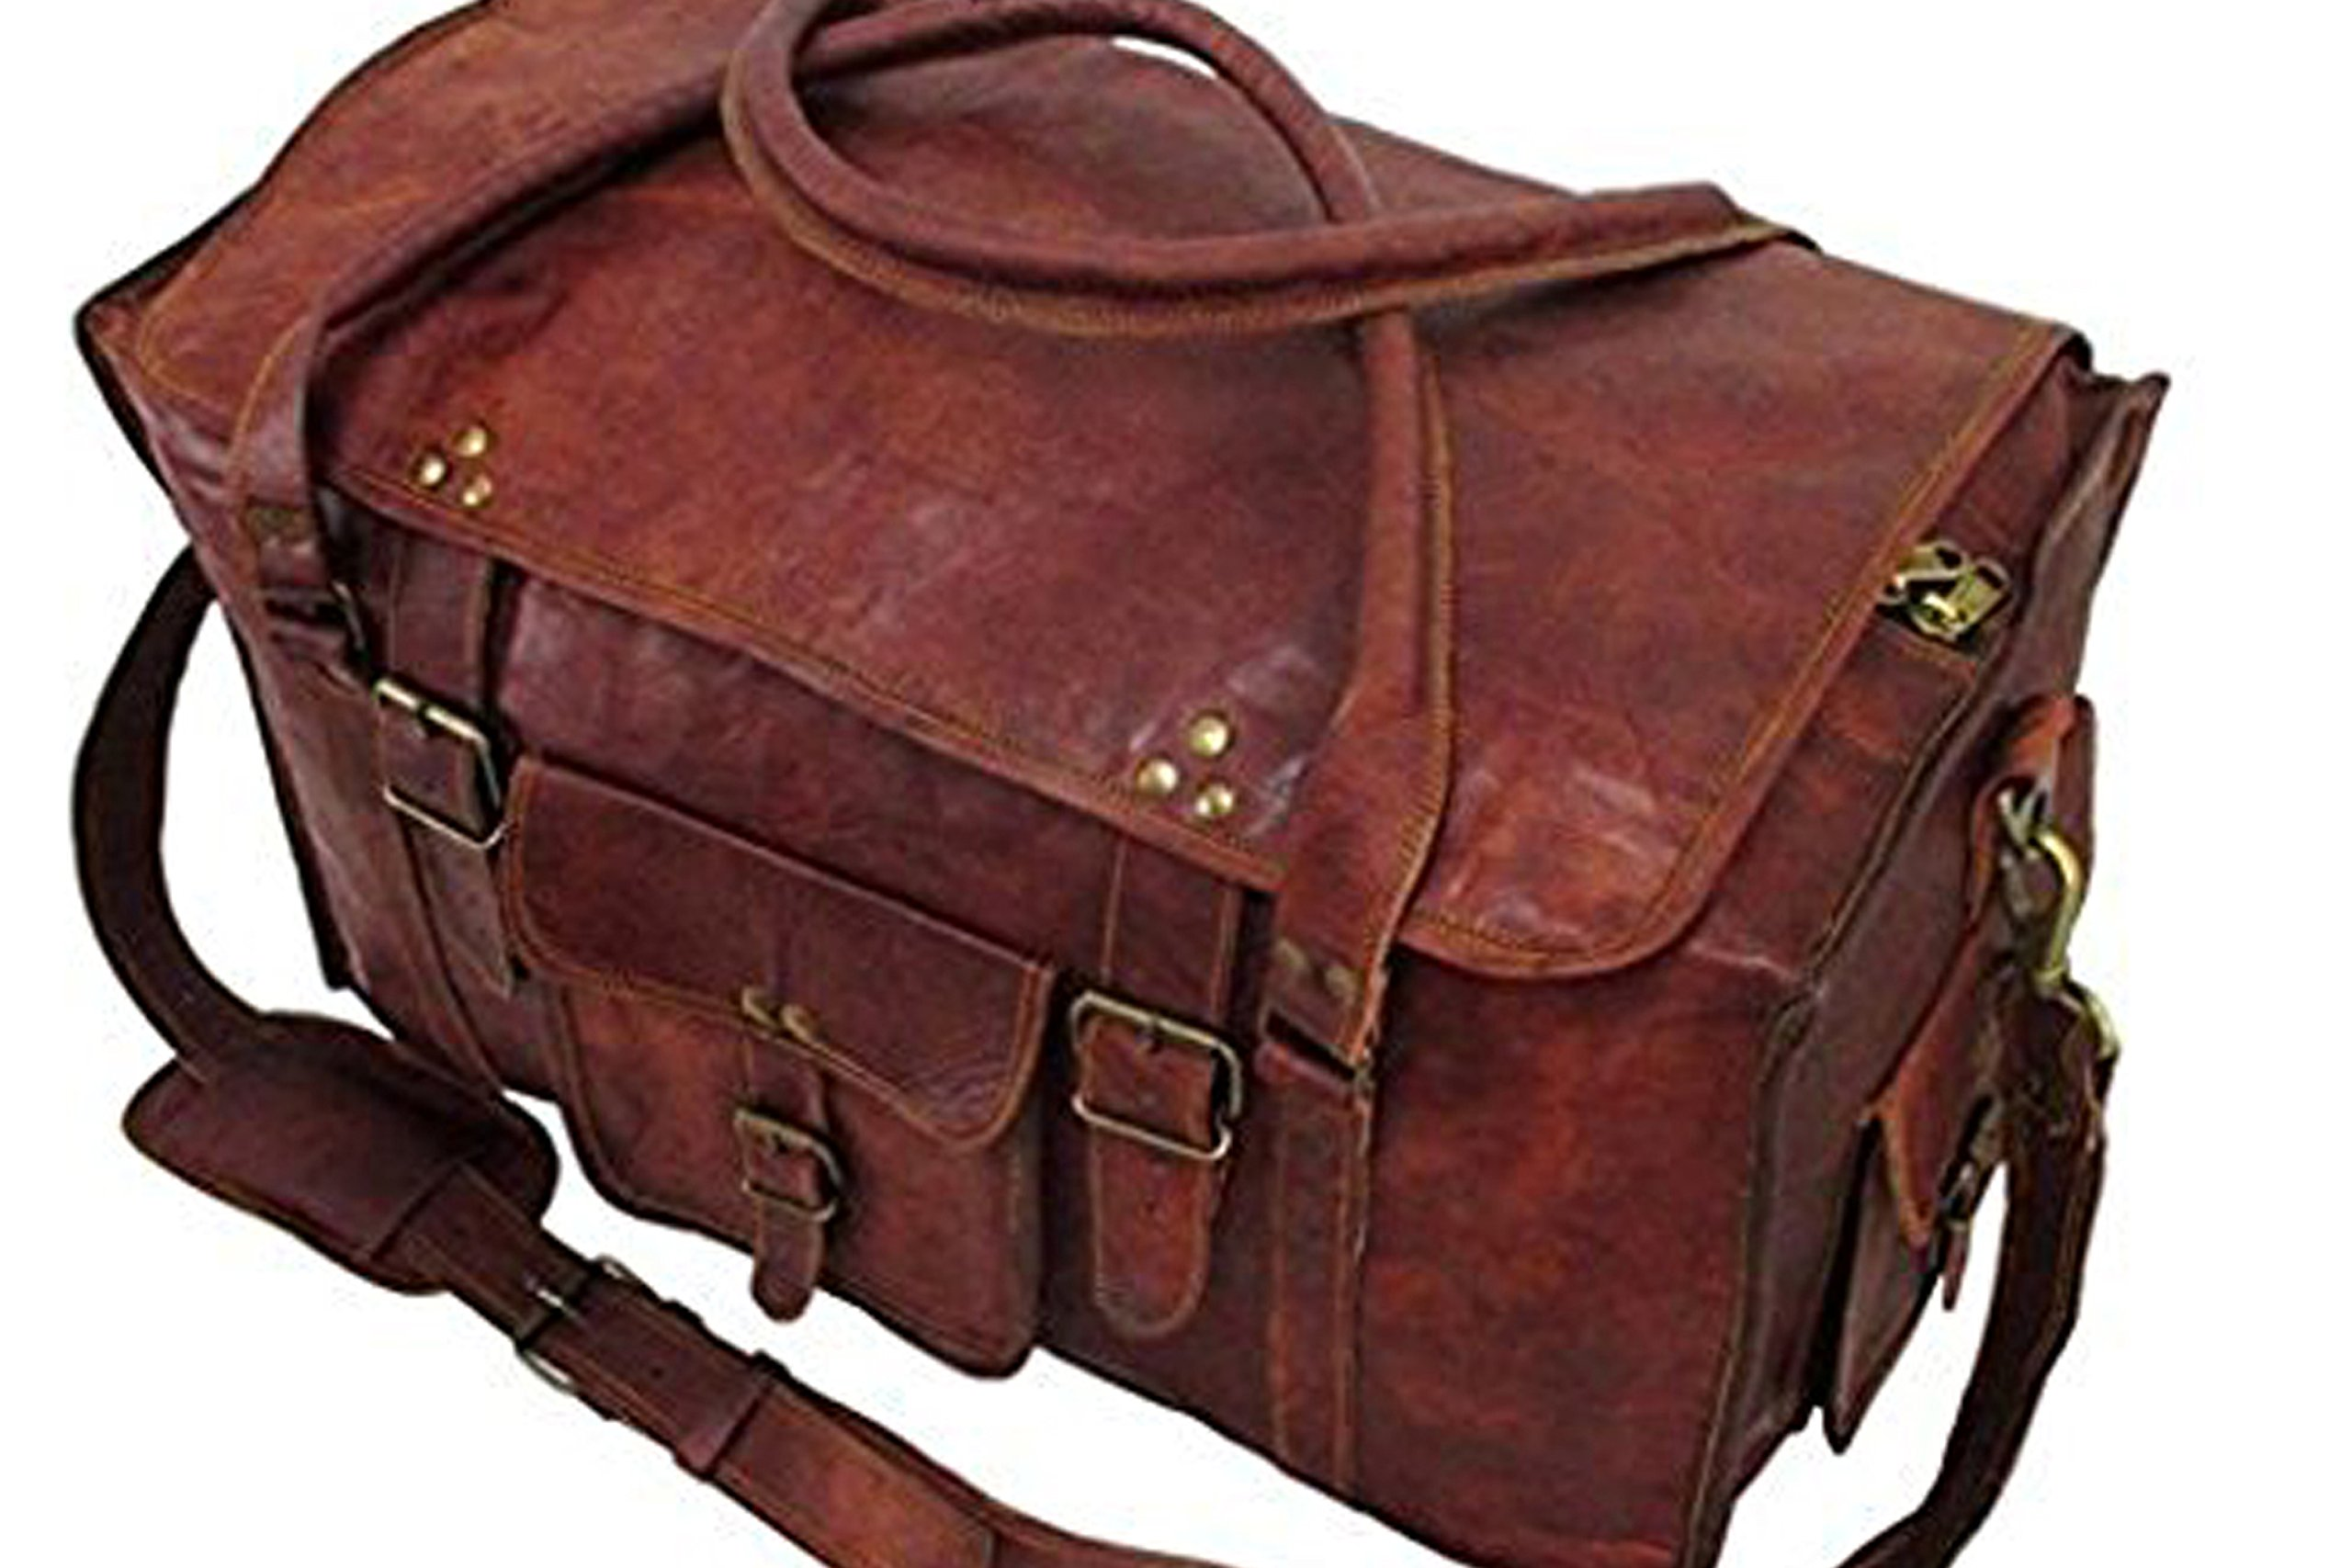 Silkroute craft 21'' Men & Women Retro Style Carry on Luggage Flap Duffel Leather Bag by Silkroute Craft